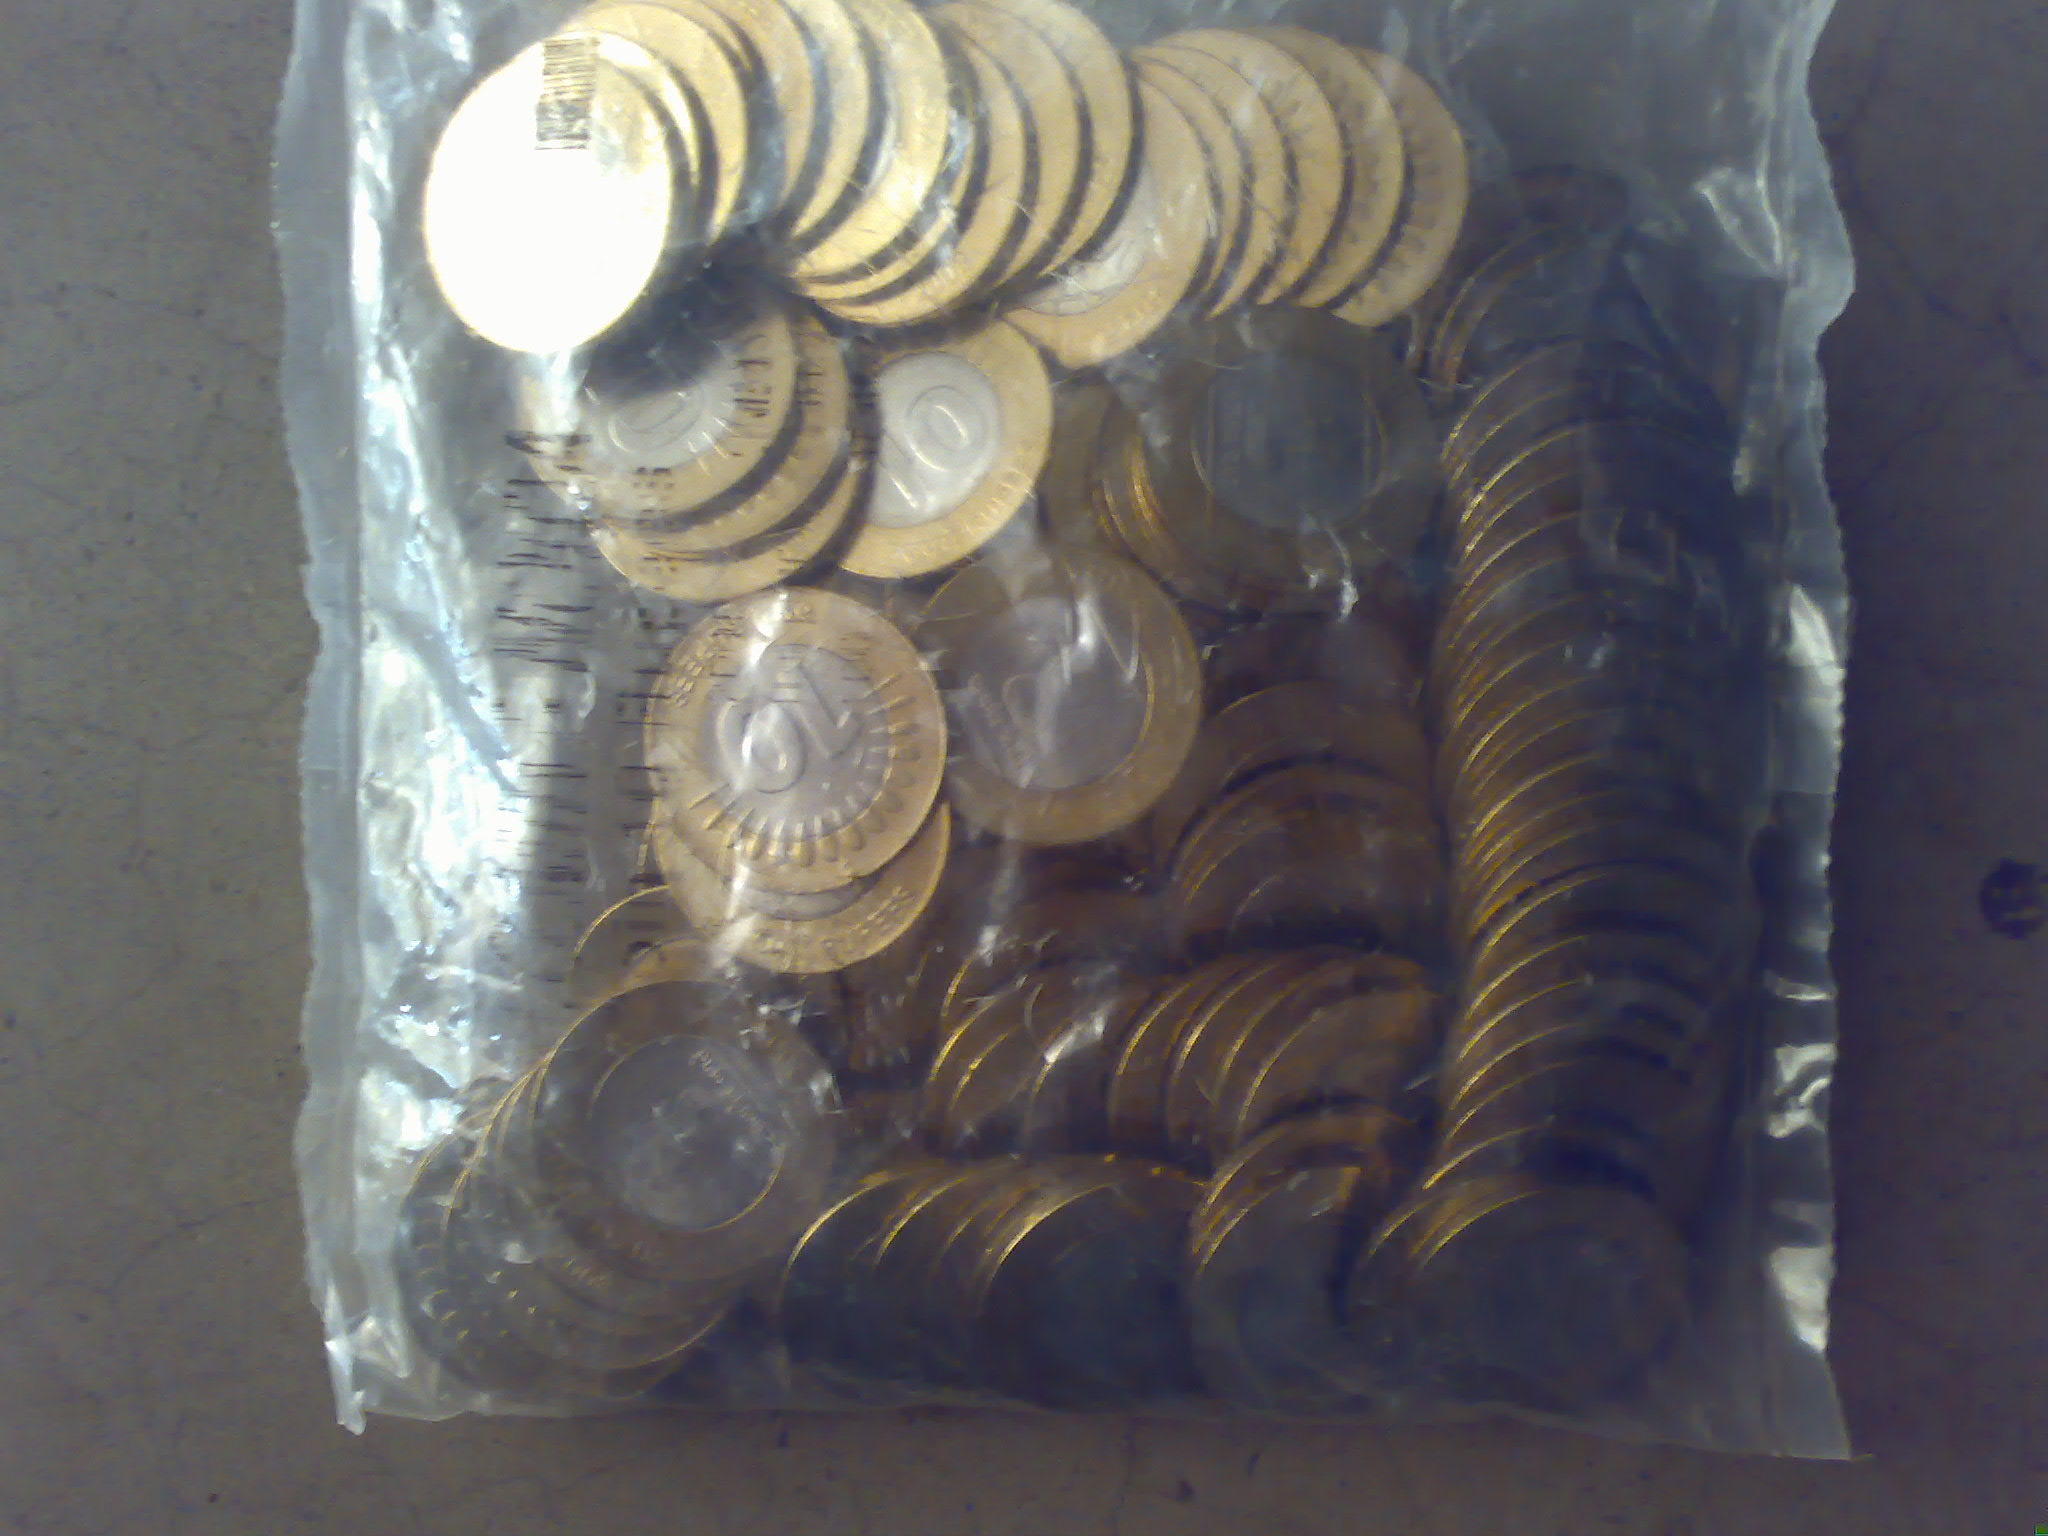 2008 pack of 100coins of Rs.10 Noida Mint